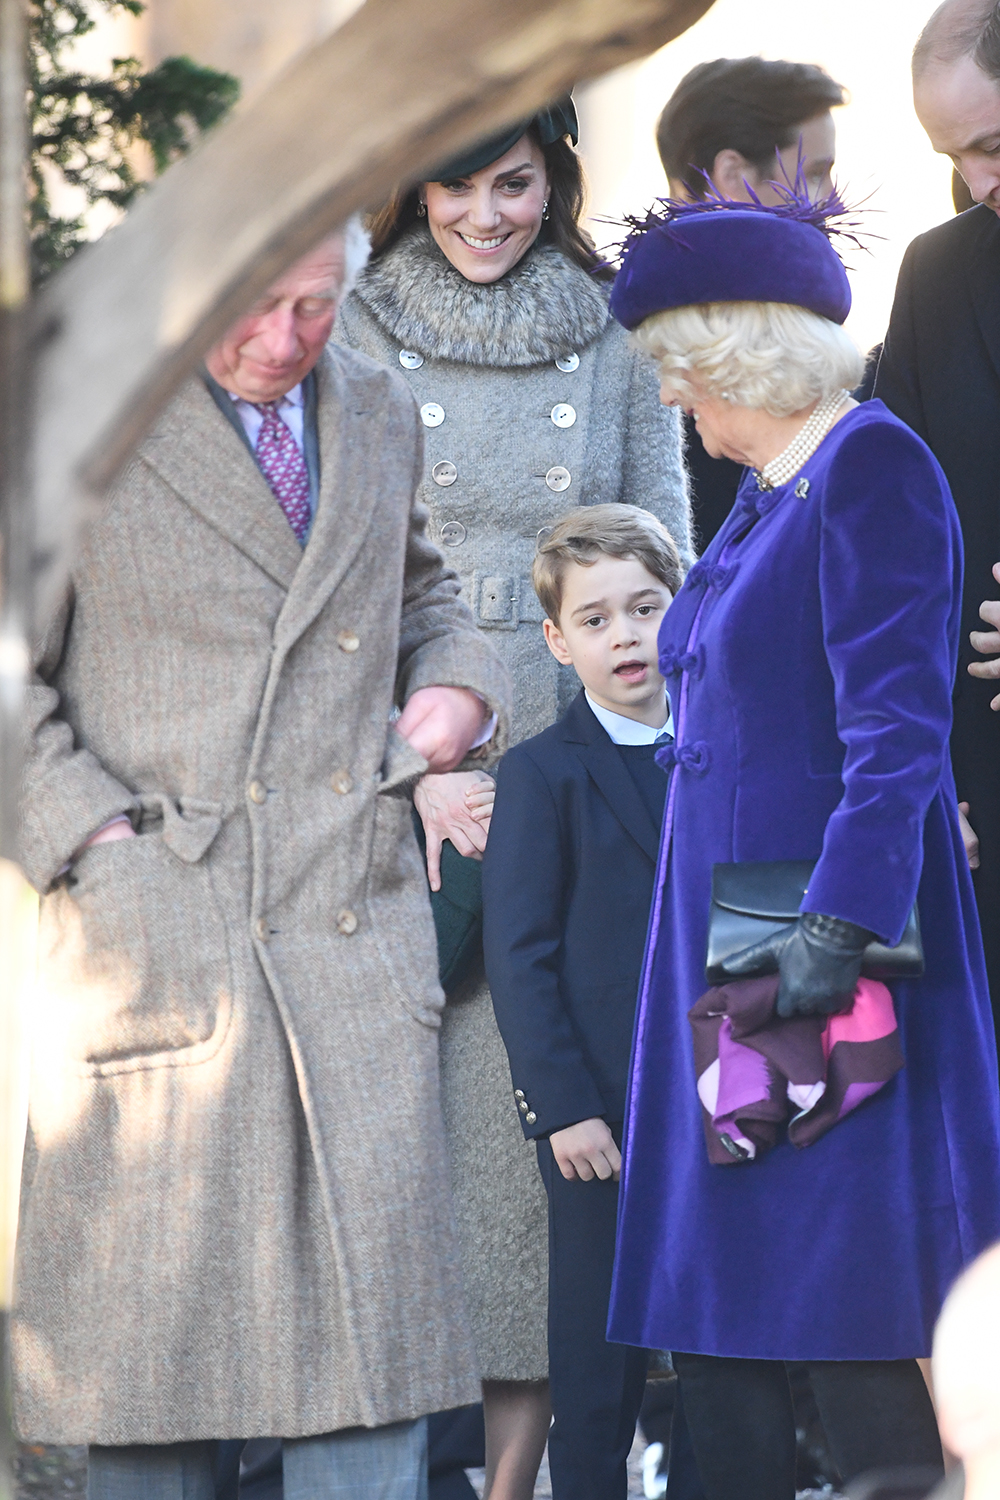 The Prince of Wales, the Duchess of Cambridge, Prince George and the Duchess of Cornwall after attending the Christmas Day morning church service at St Mary Magdalene Church in Sandringham, Norfolk. (Photo by Joe Giddens/PA Images via Getty Images)